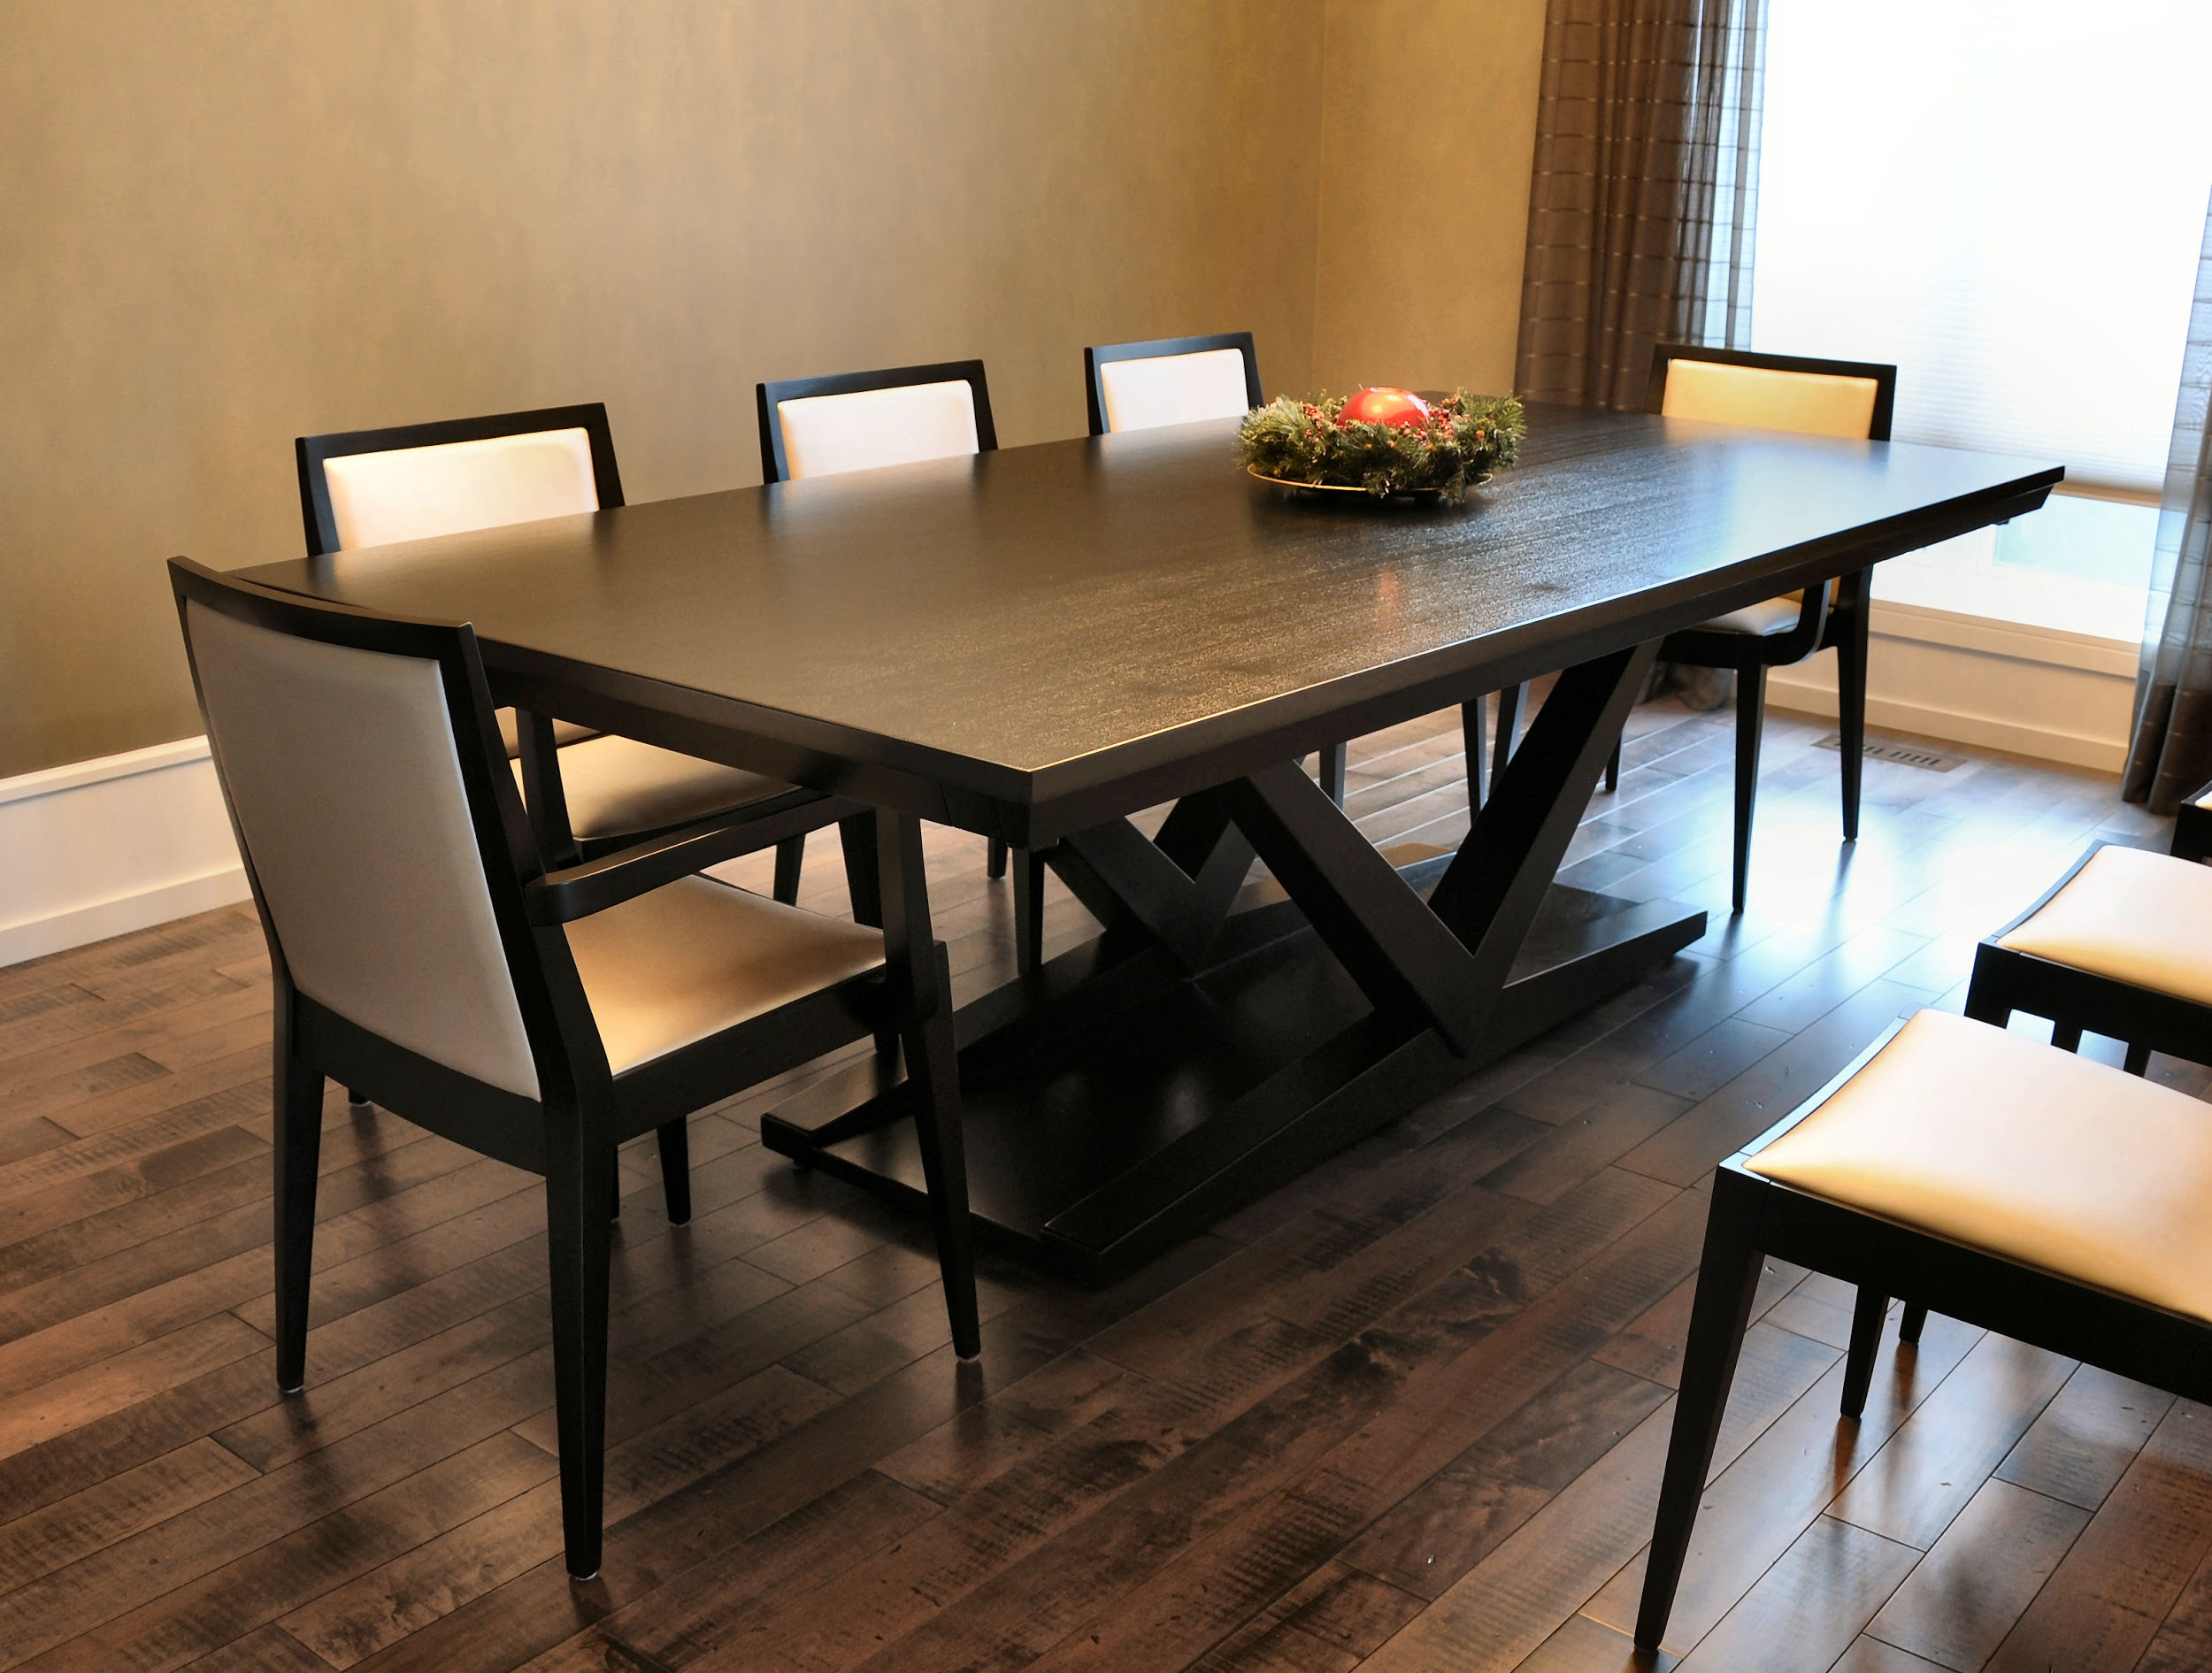 The Mercury Dining Table in a Contemporary finish with Flame chairs